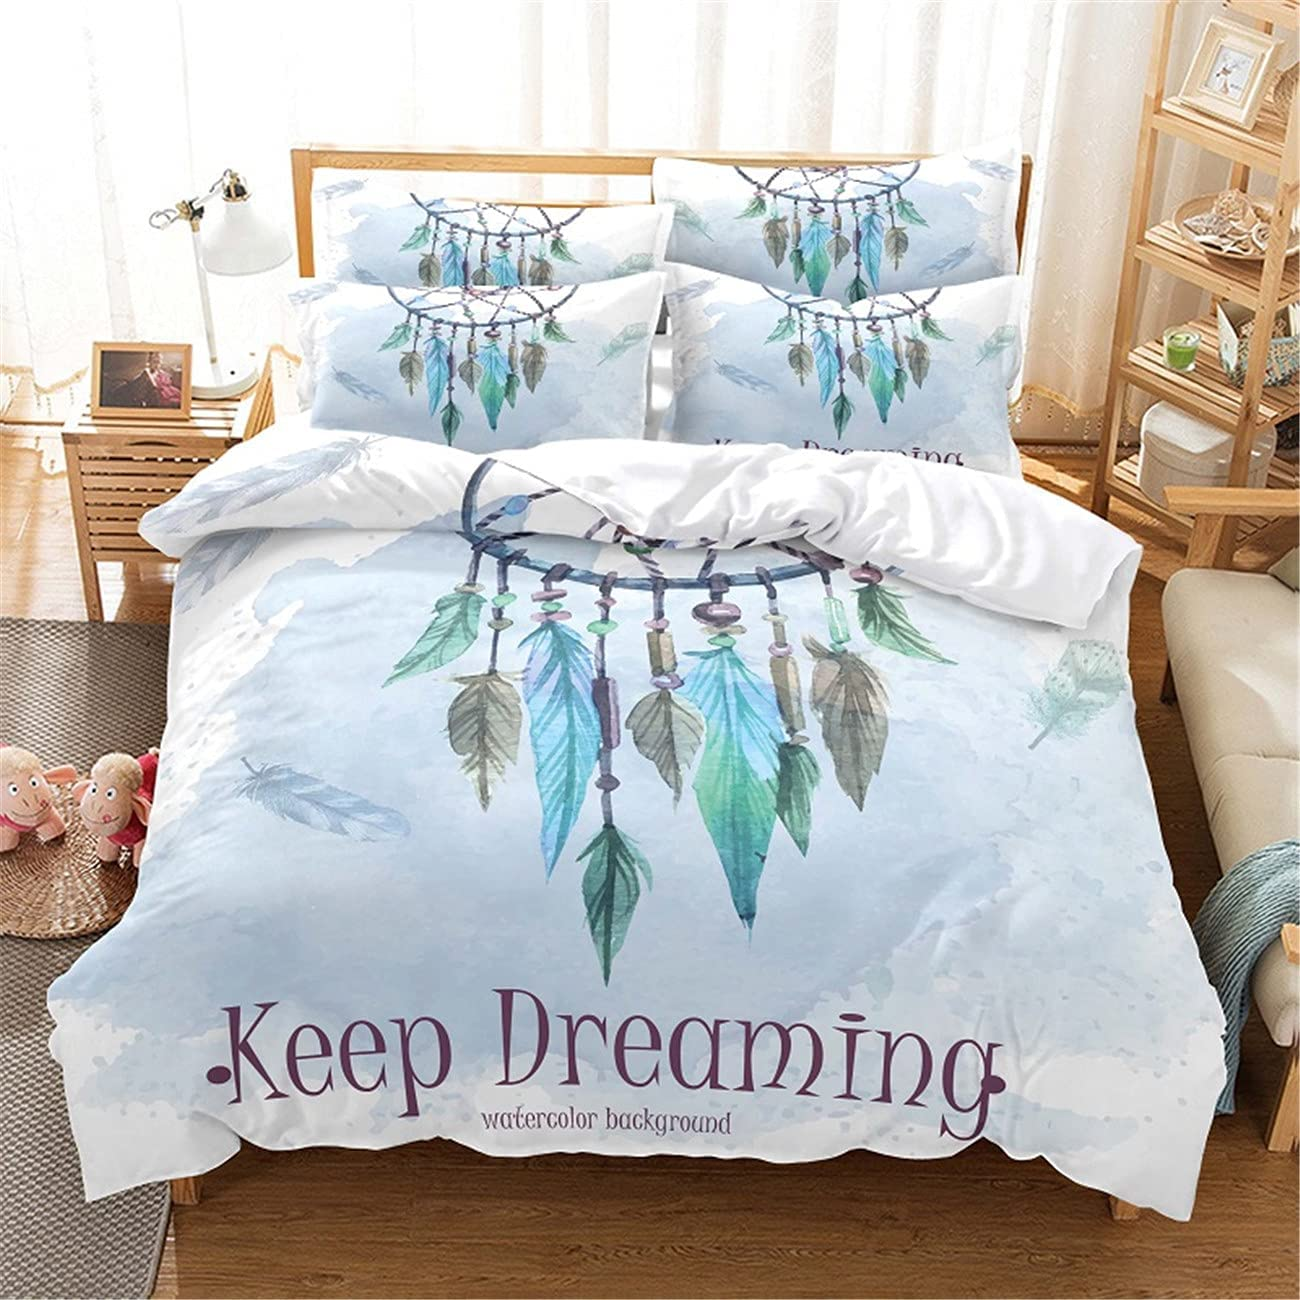 Excellence Dream Net Feather Digital Printing Quilt Cover Bedding Bedroom Jacksonville Mall